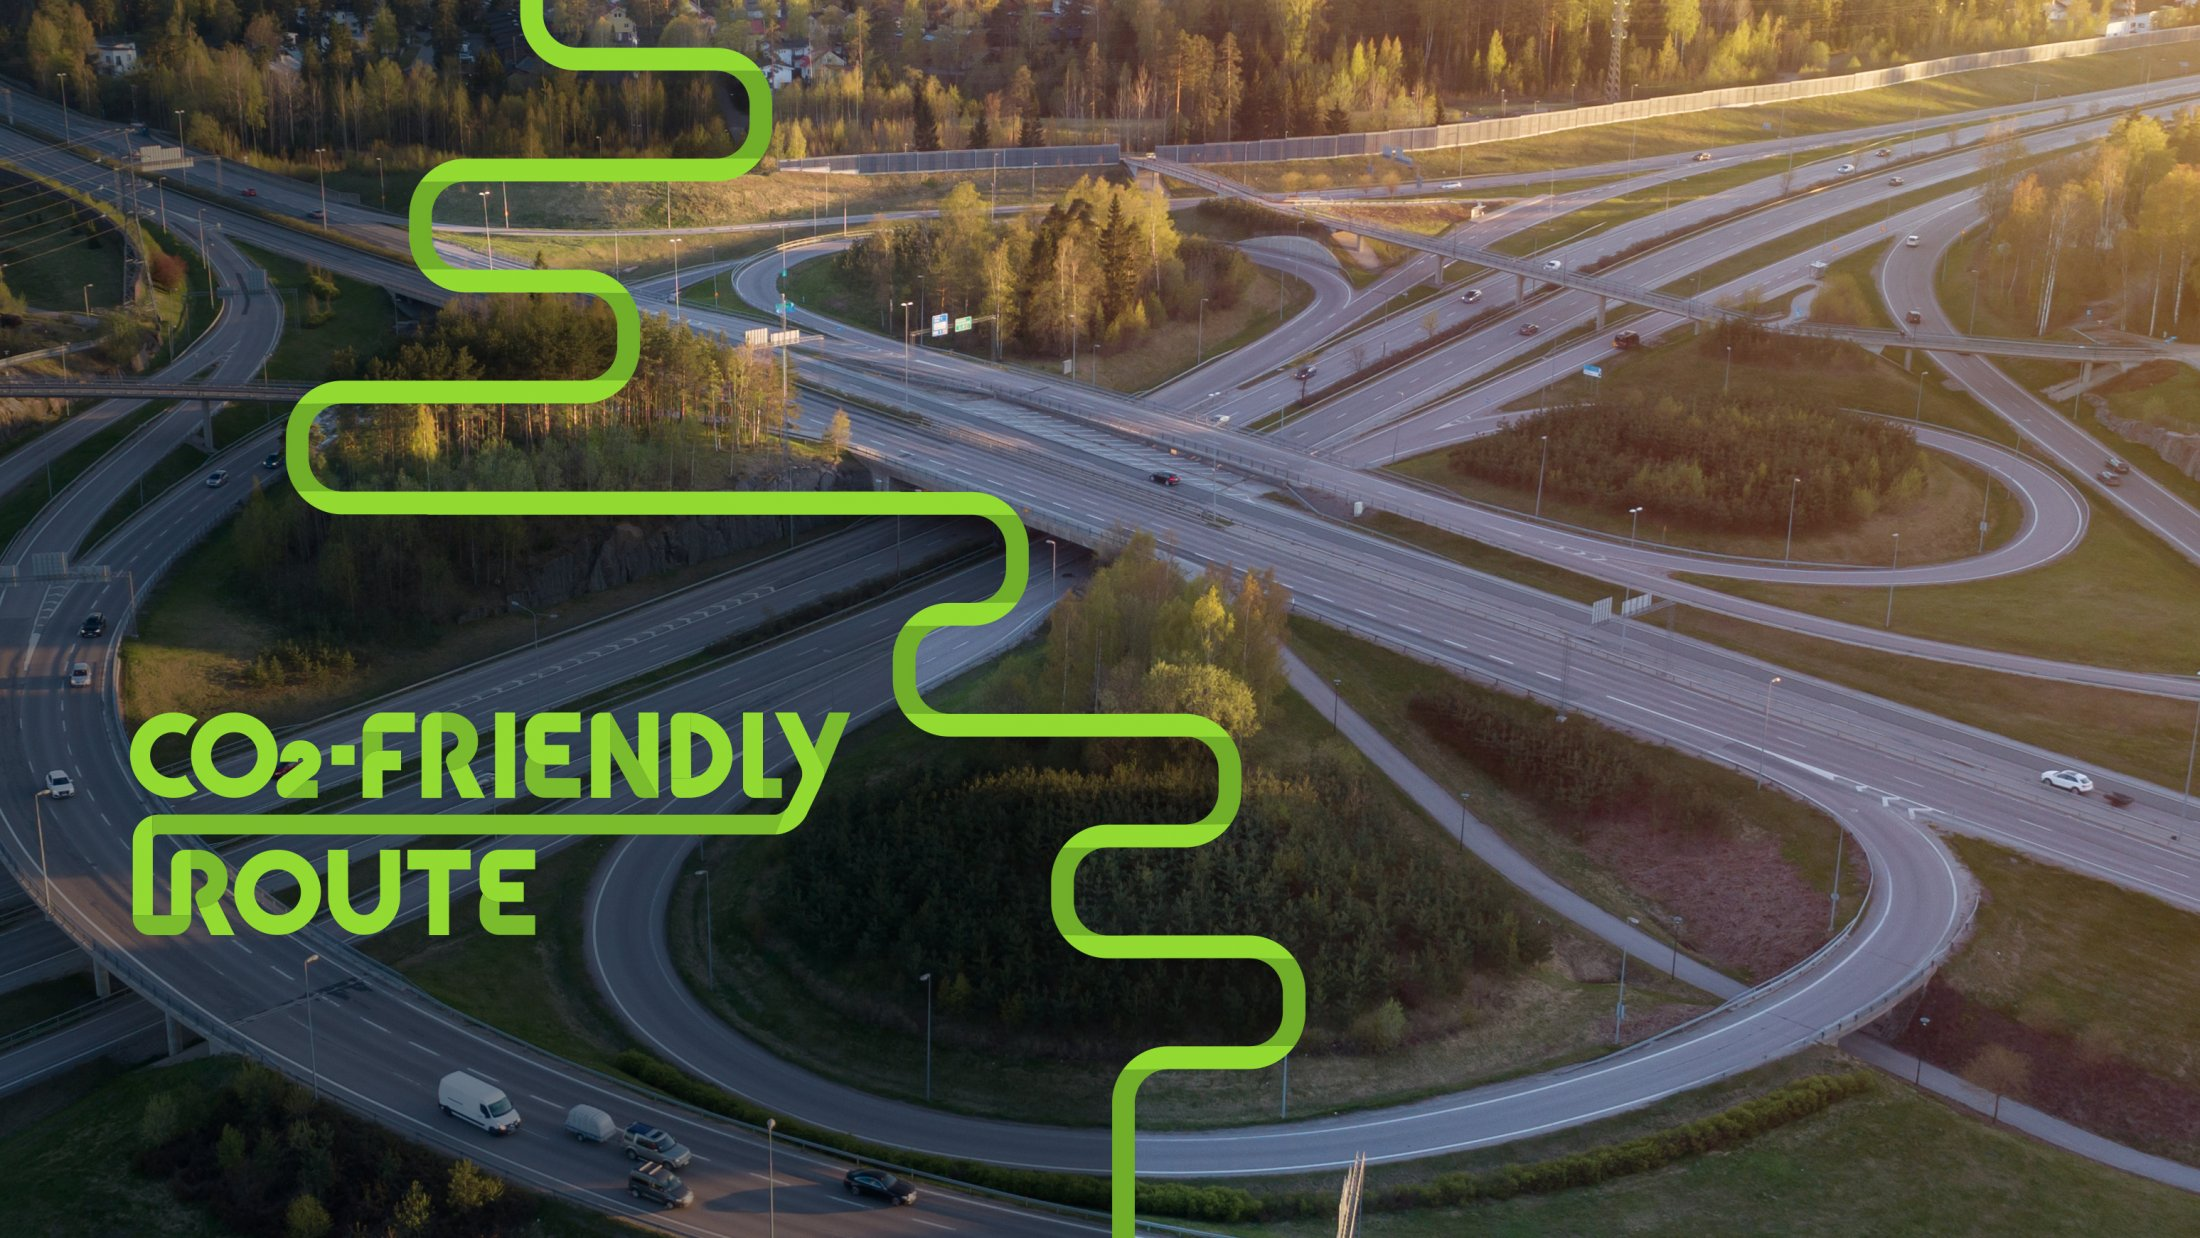 Thumbnail for The most CO2-friendly route